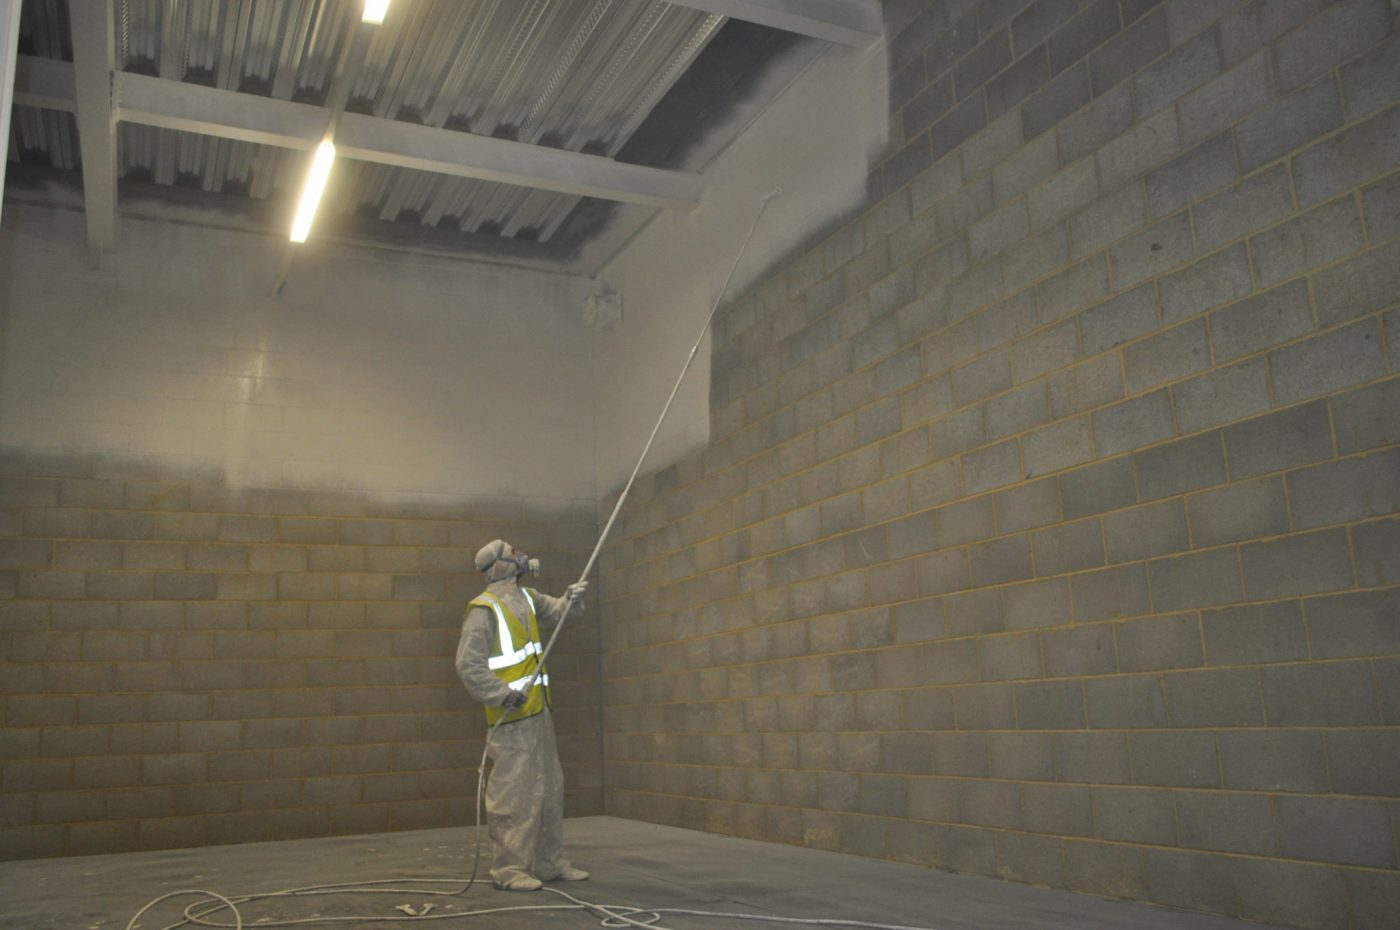 Spray painting services in London